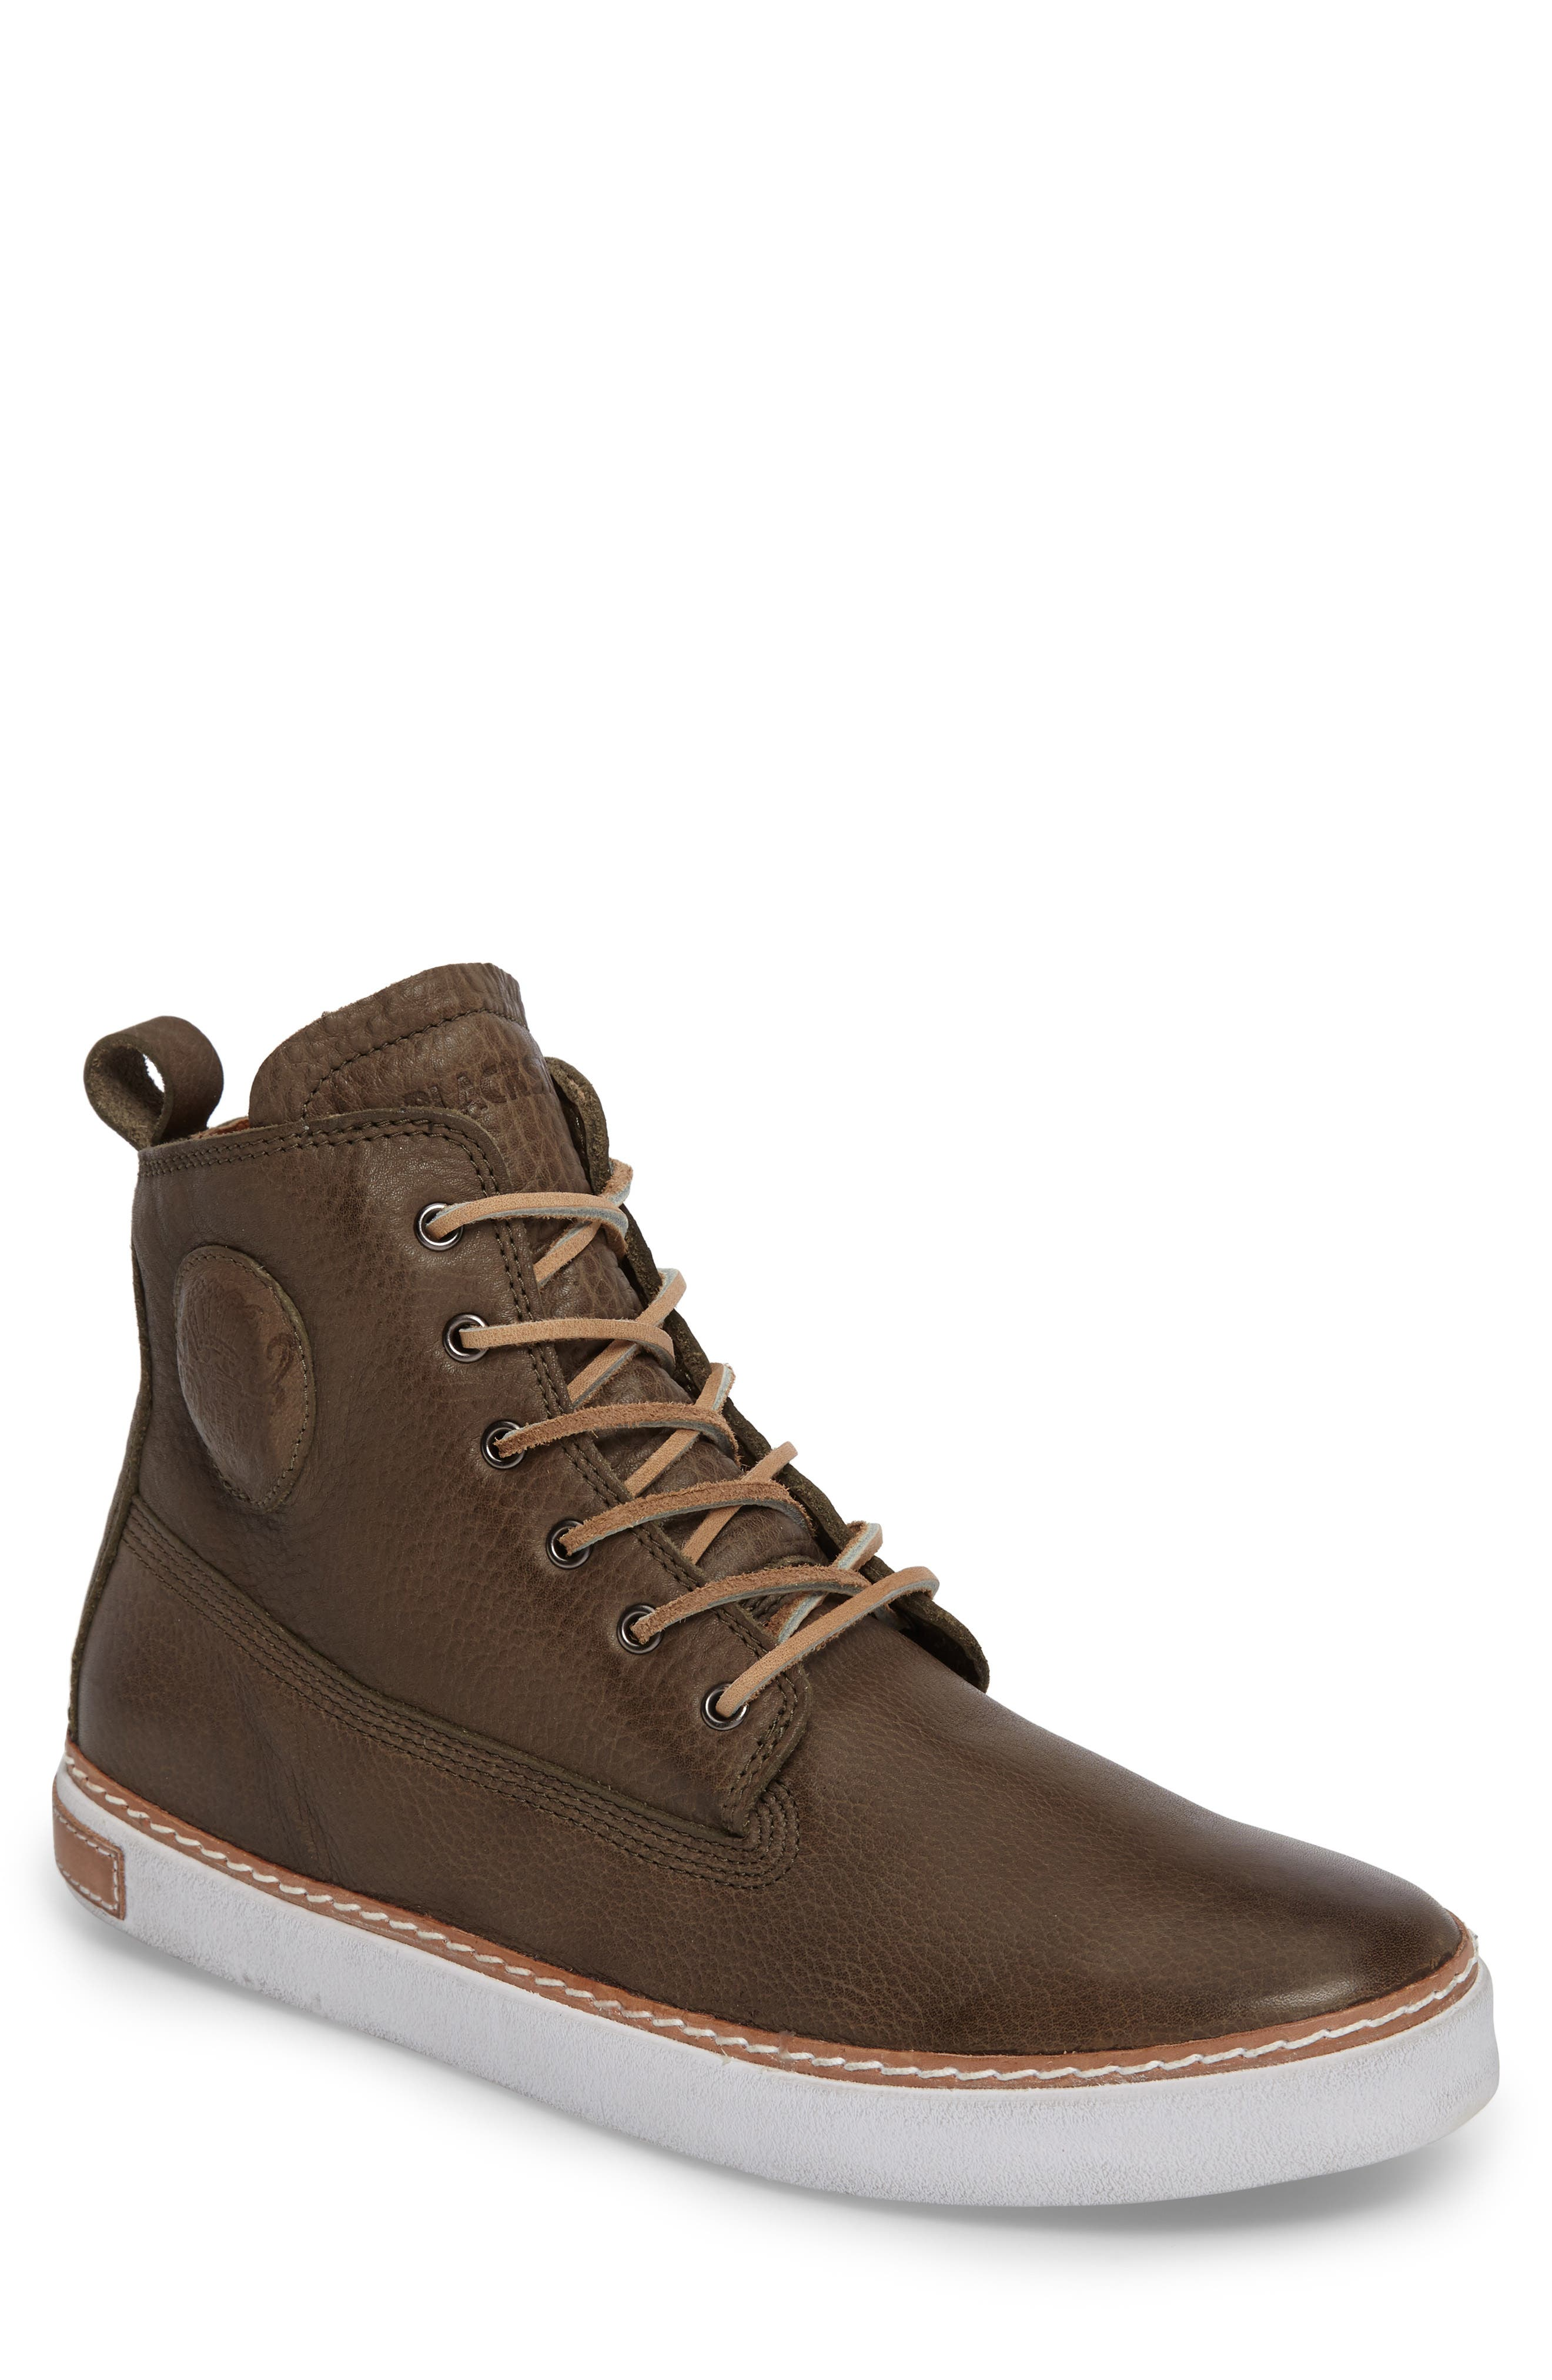 'AM02' Sneaker,                             Main thumbnail 1, color,                             OLIVE LEATHER